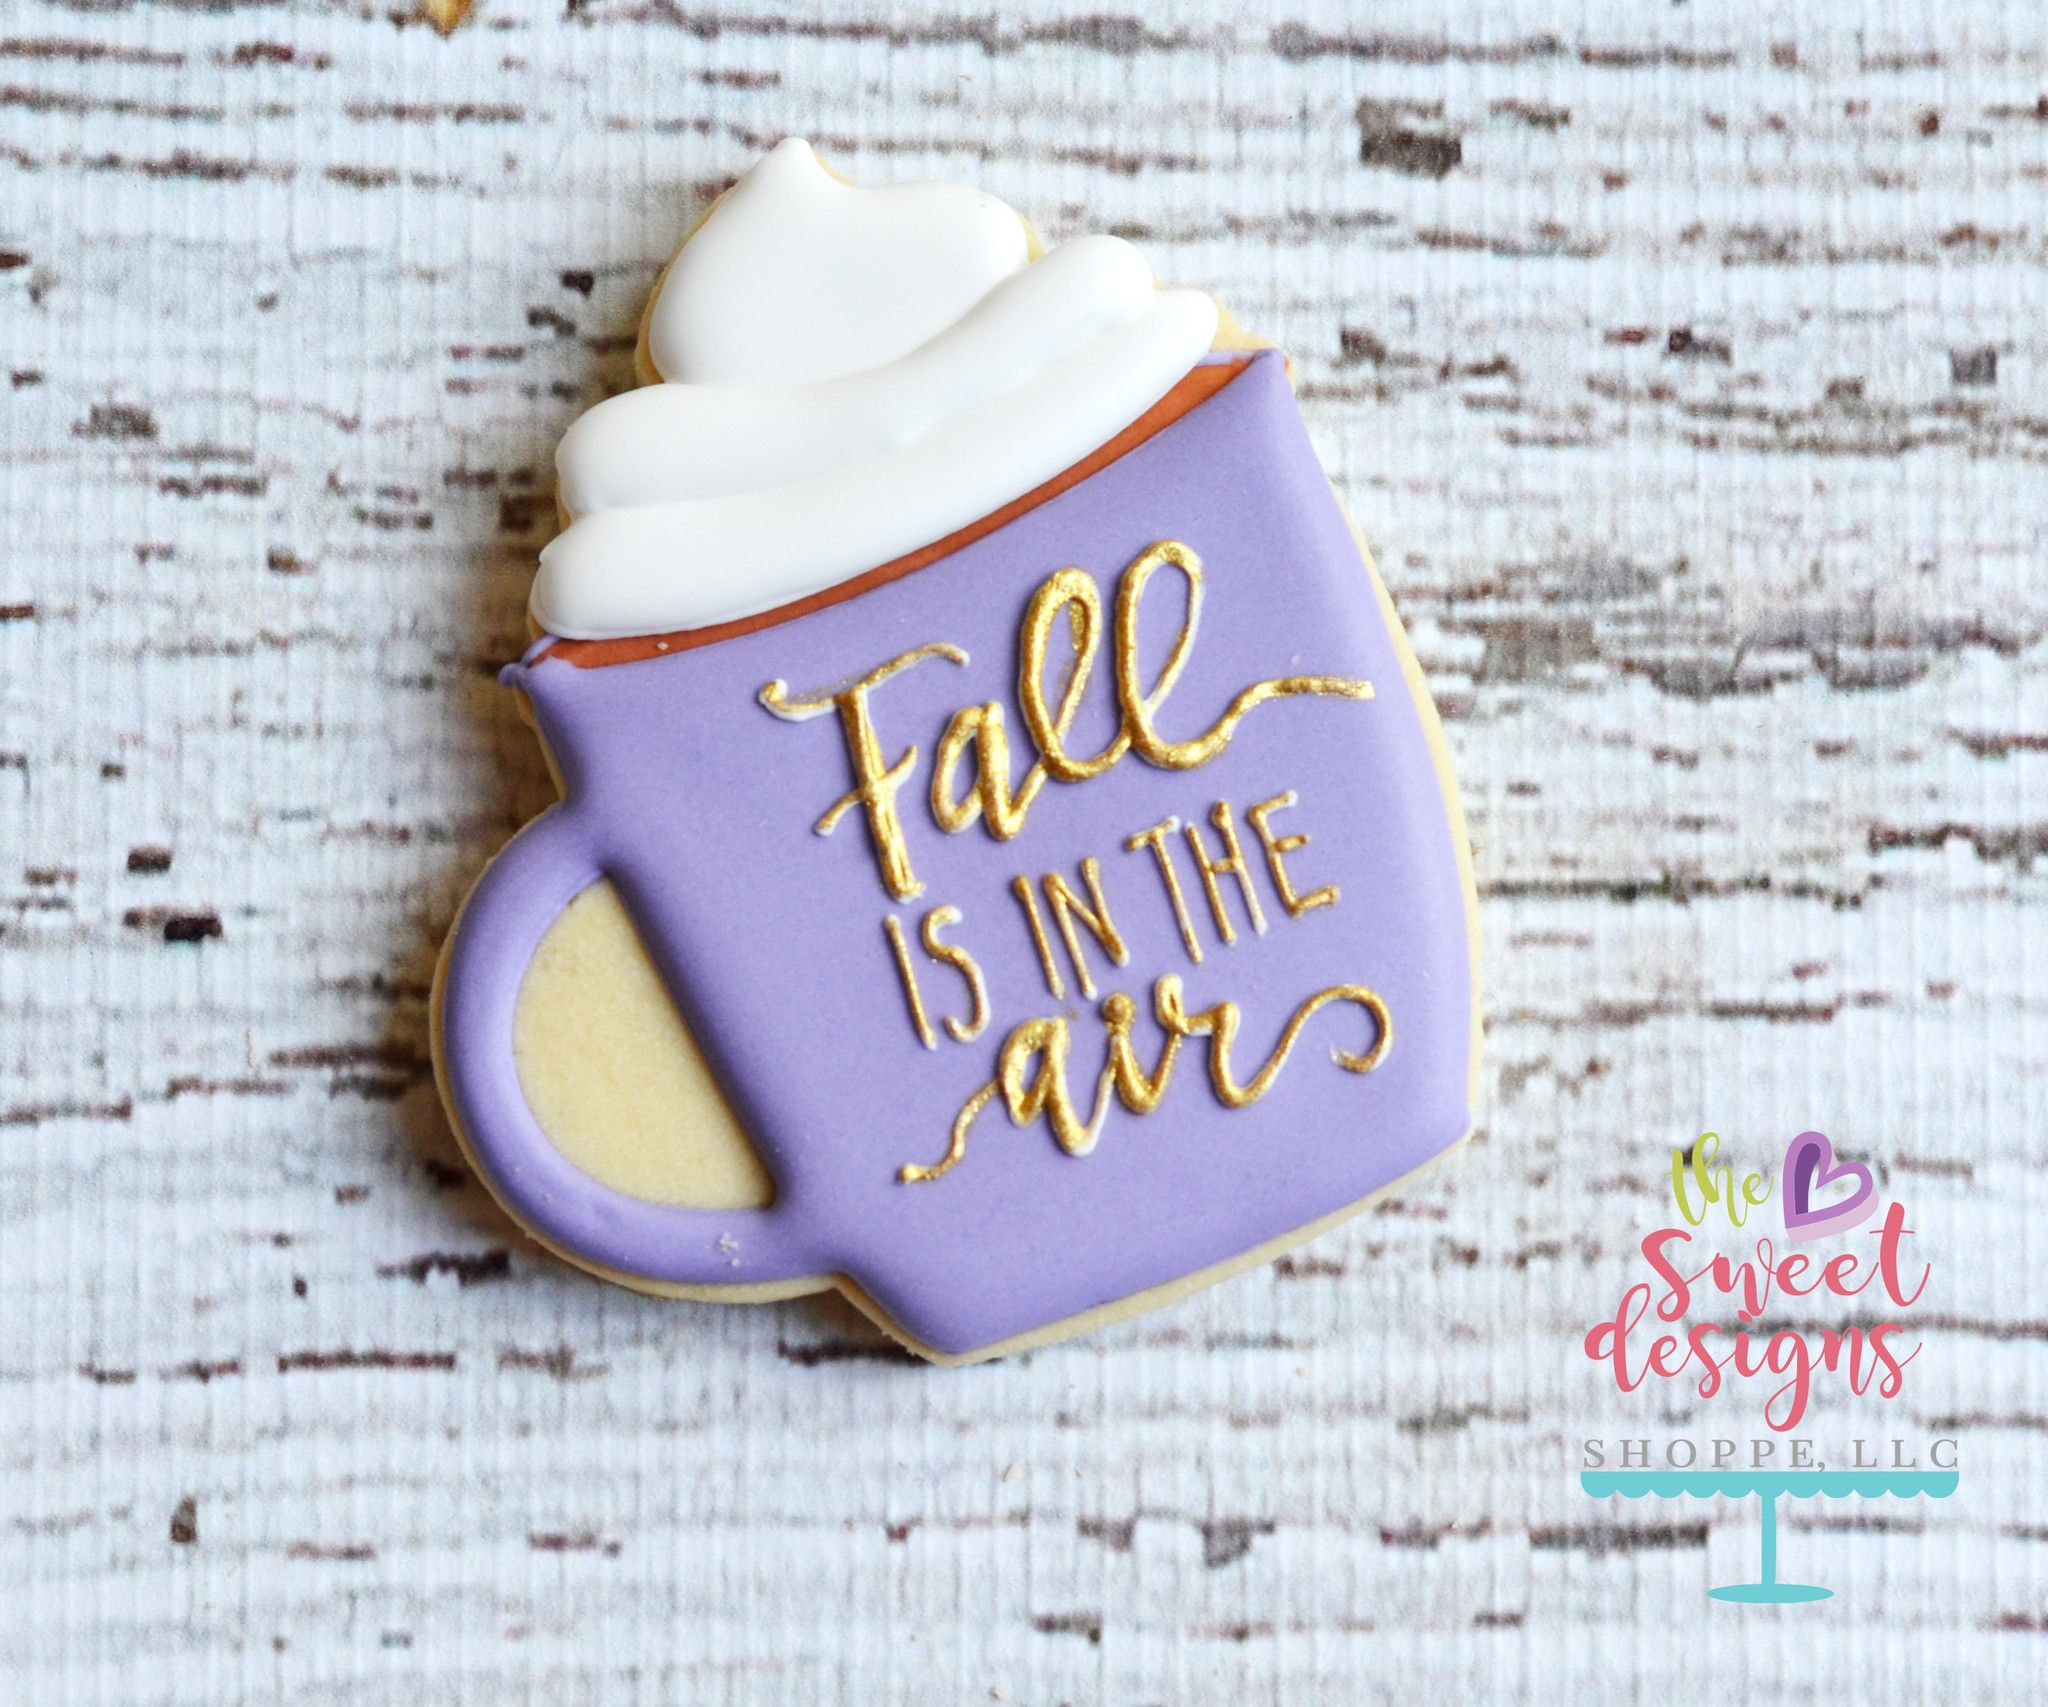 Coffee cup with whip v2 cutter cookie decorating